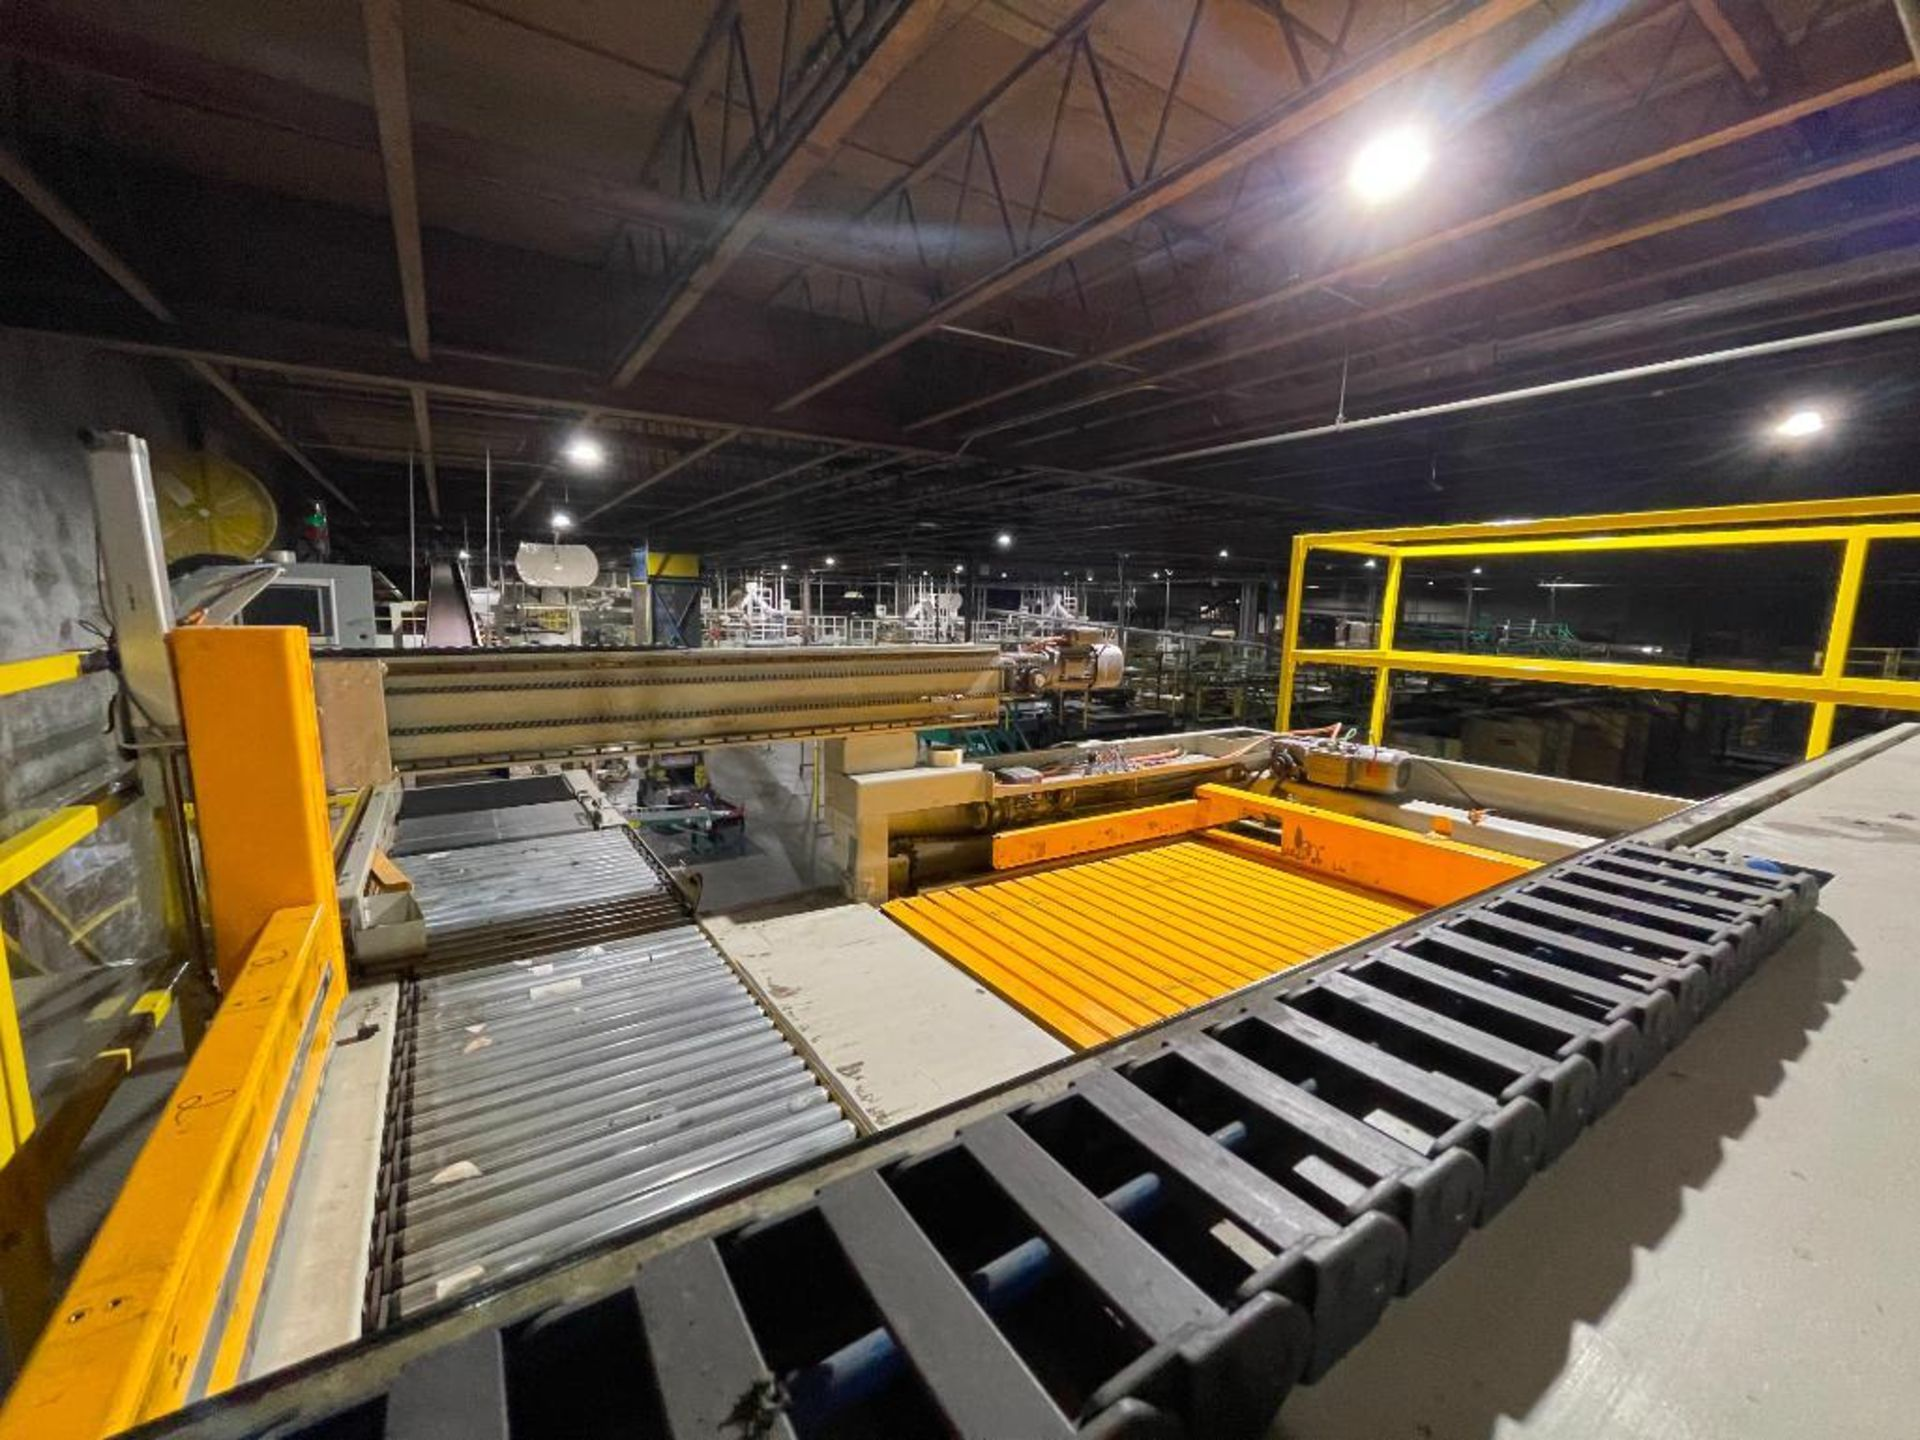 2013 TopTier downstacker, model DS with integrated TopTier pallet wrapper - Image 56 of 66